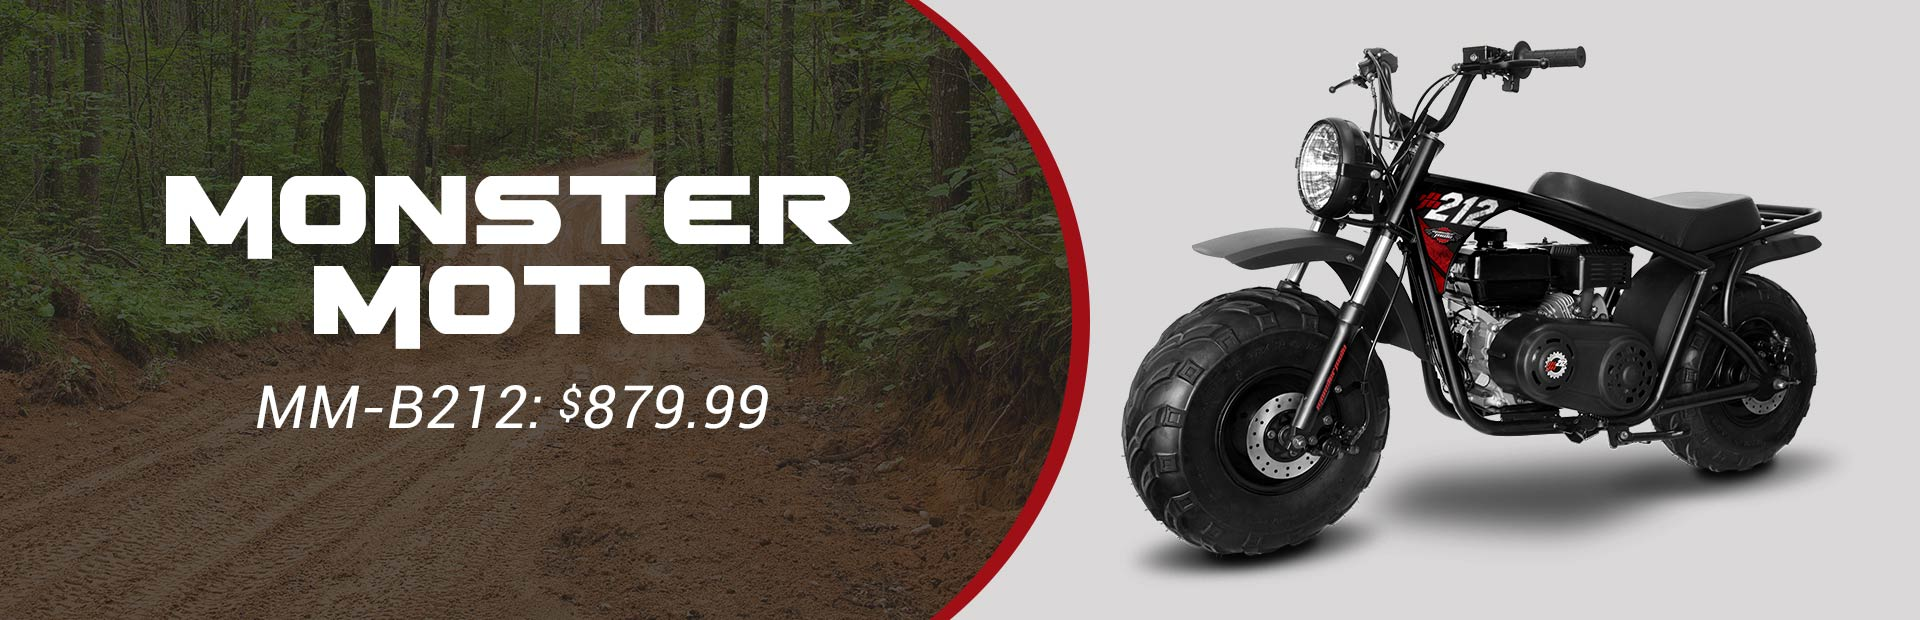 Get the Monster Moto MM-B212 for just $879.99!